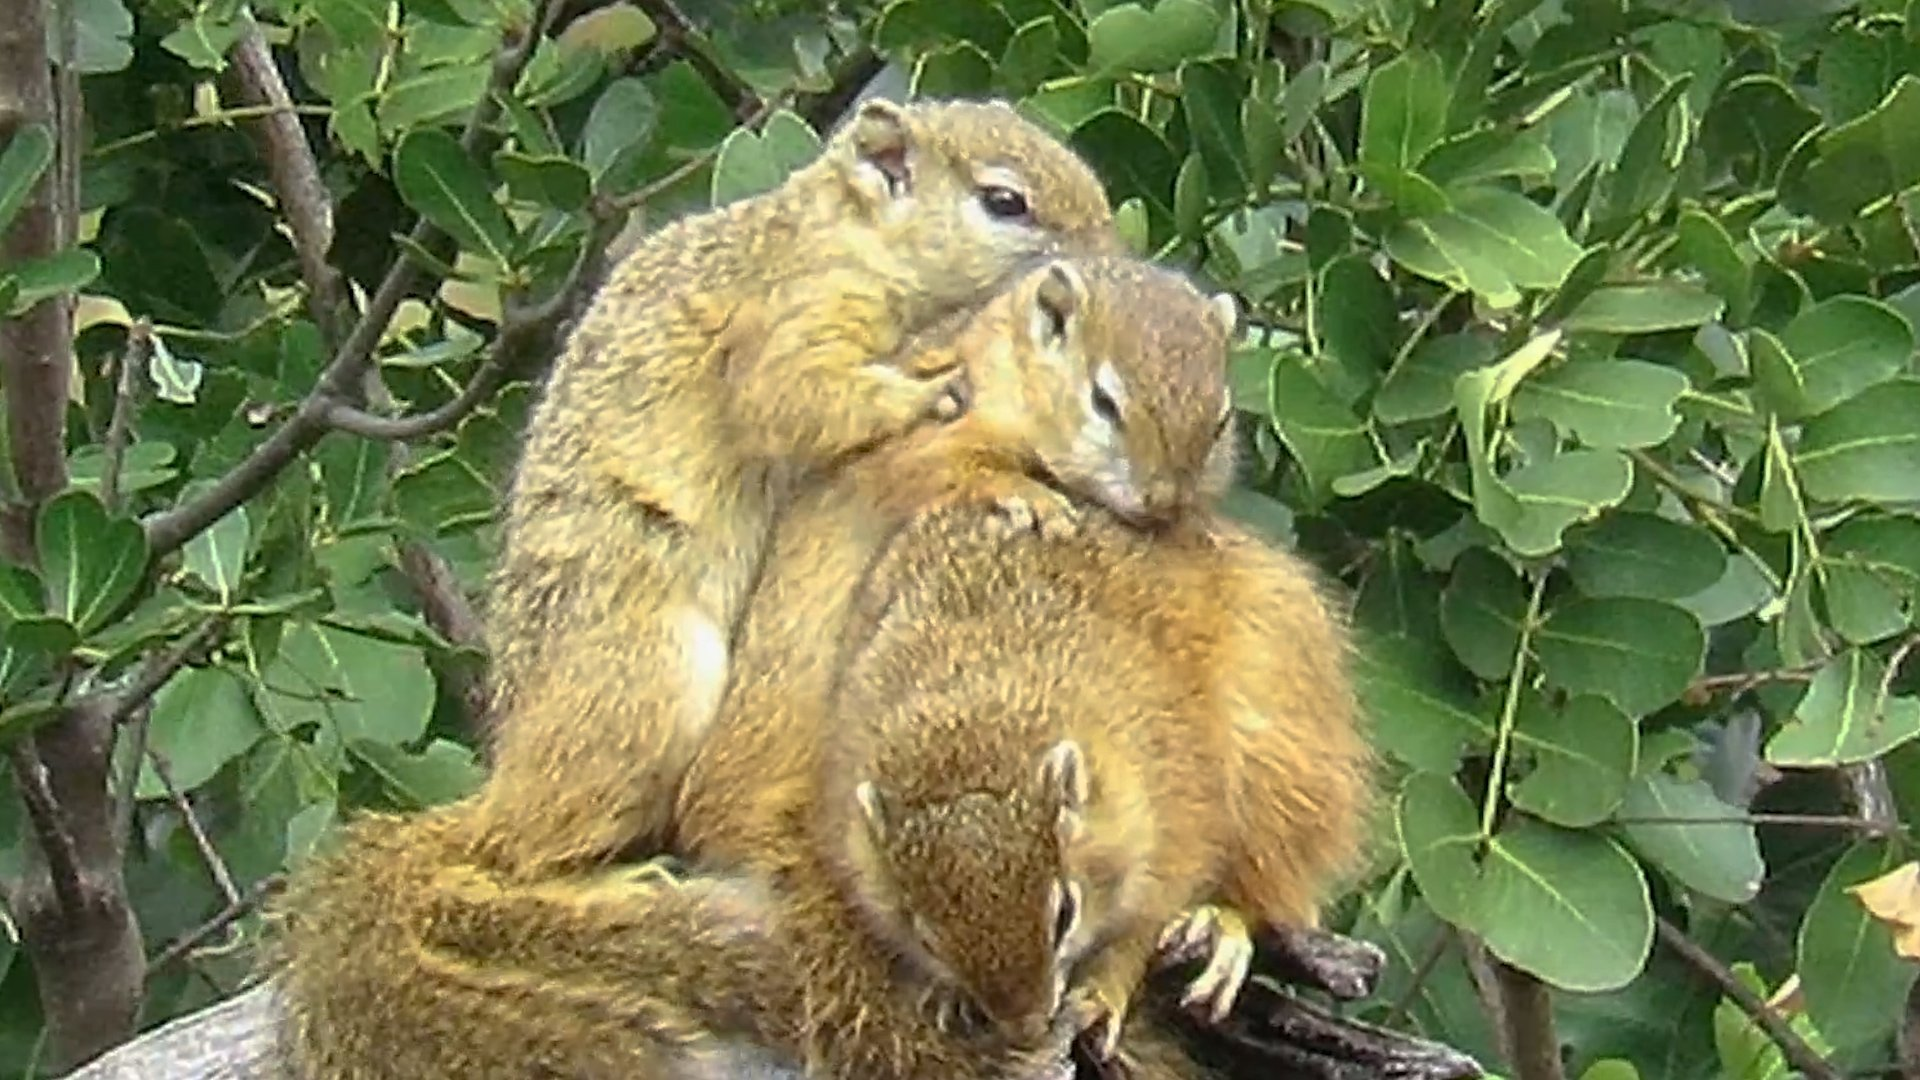 As social animals, Smith's Bush squirrels like to use their snuggle time for warmth and mutual grooming https://t.co/ZRbobcbIf8